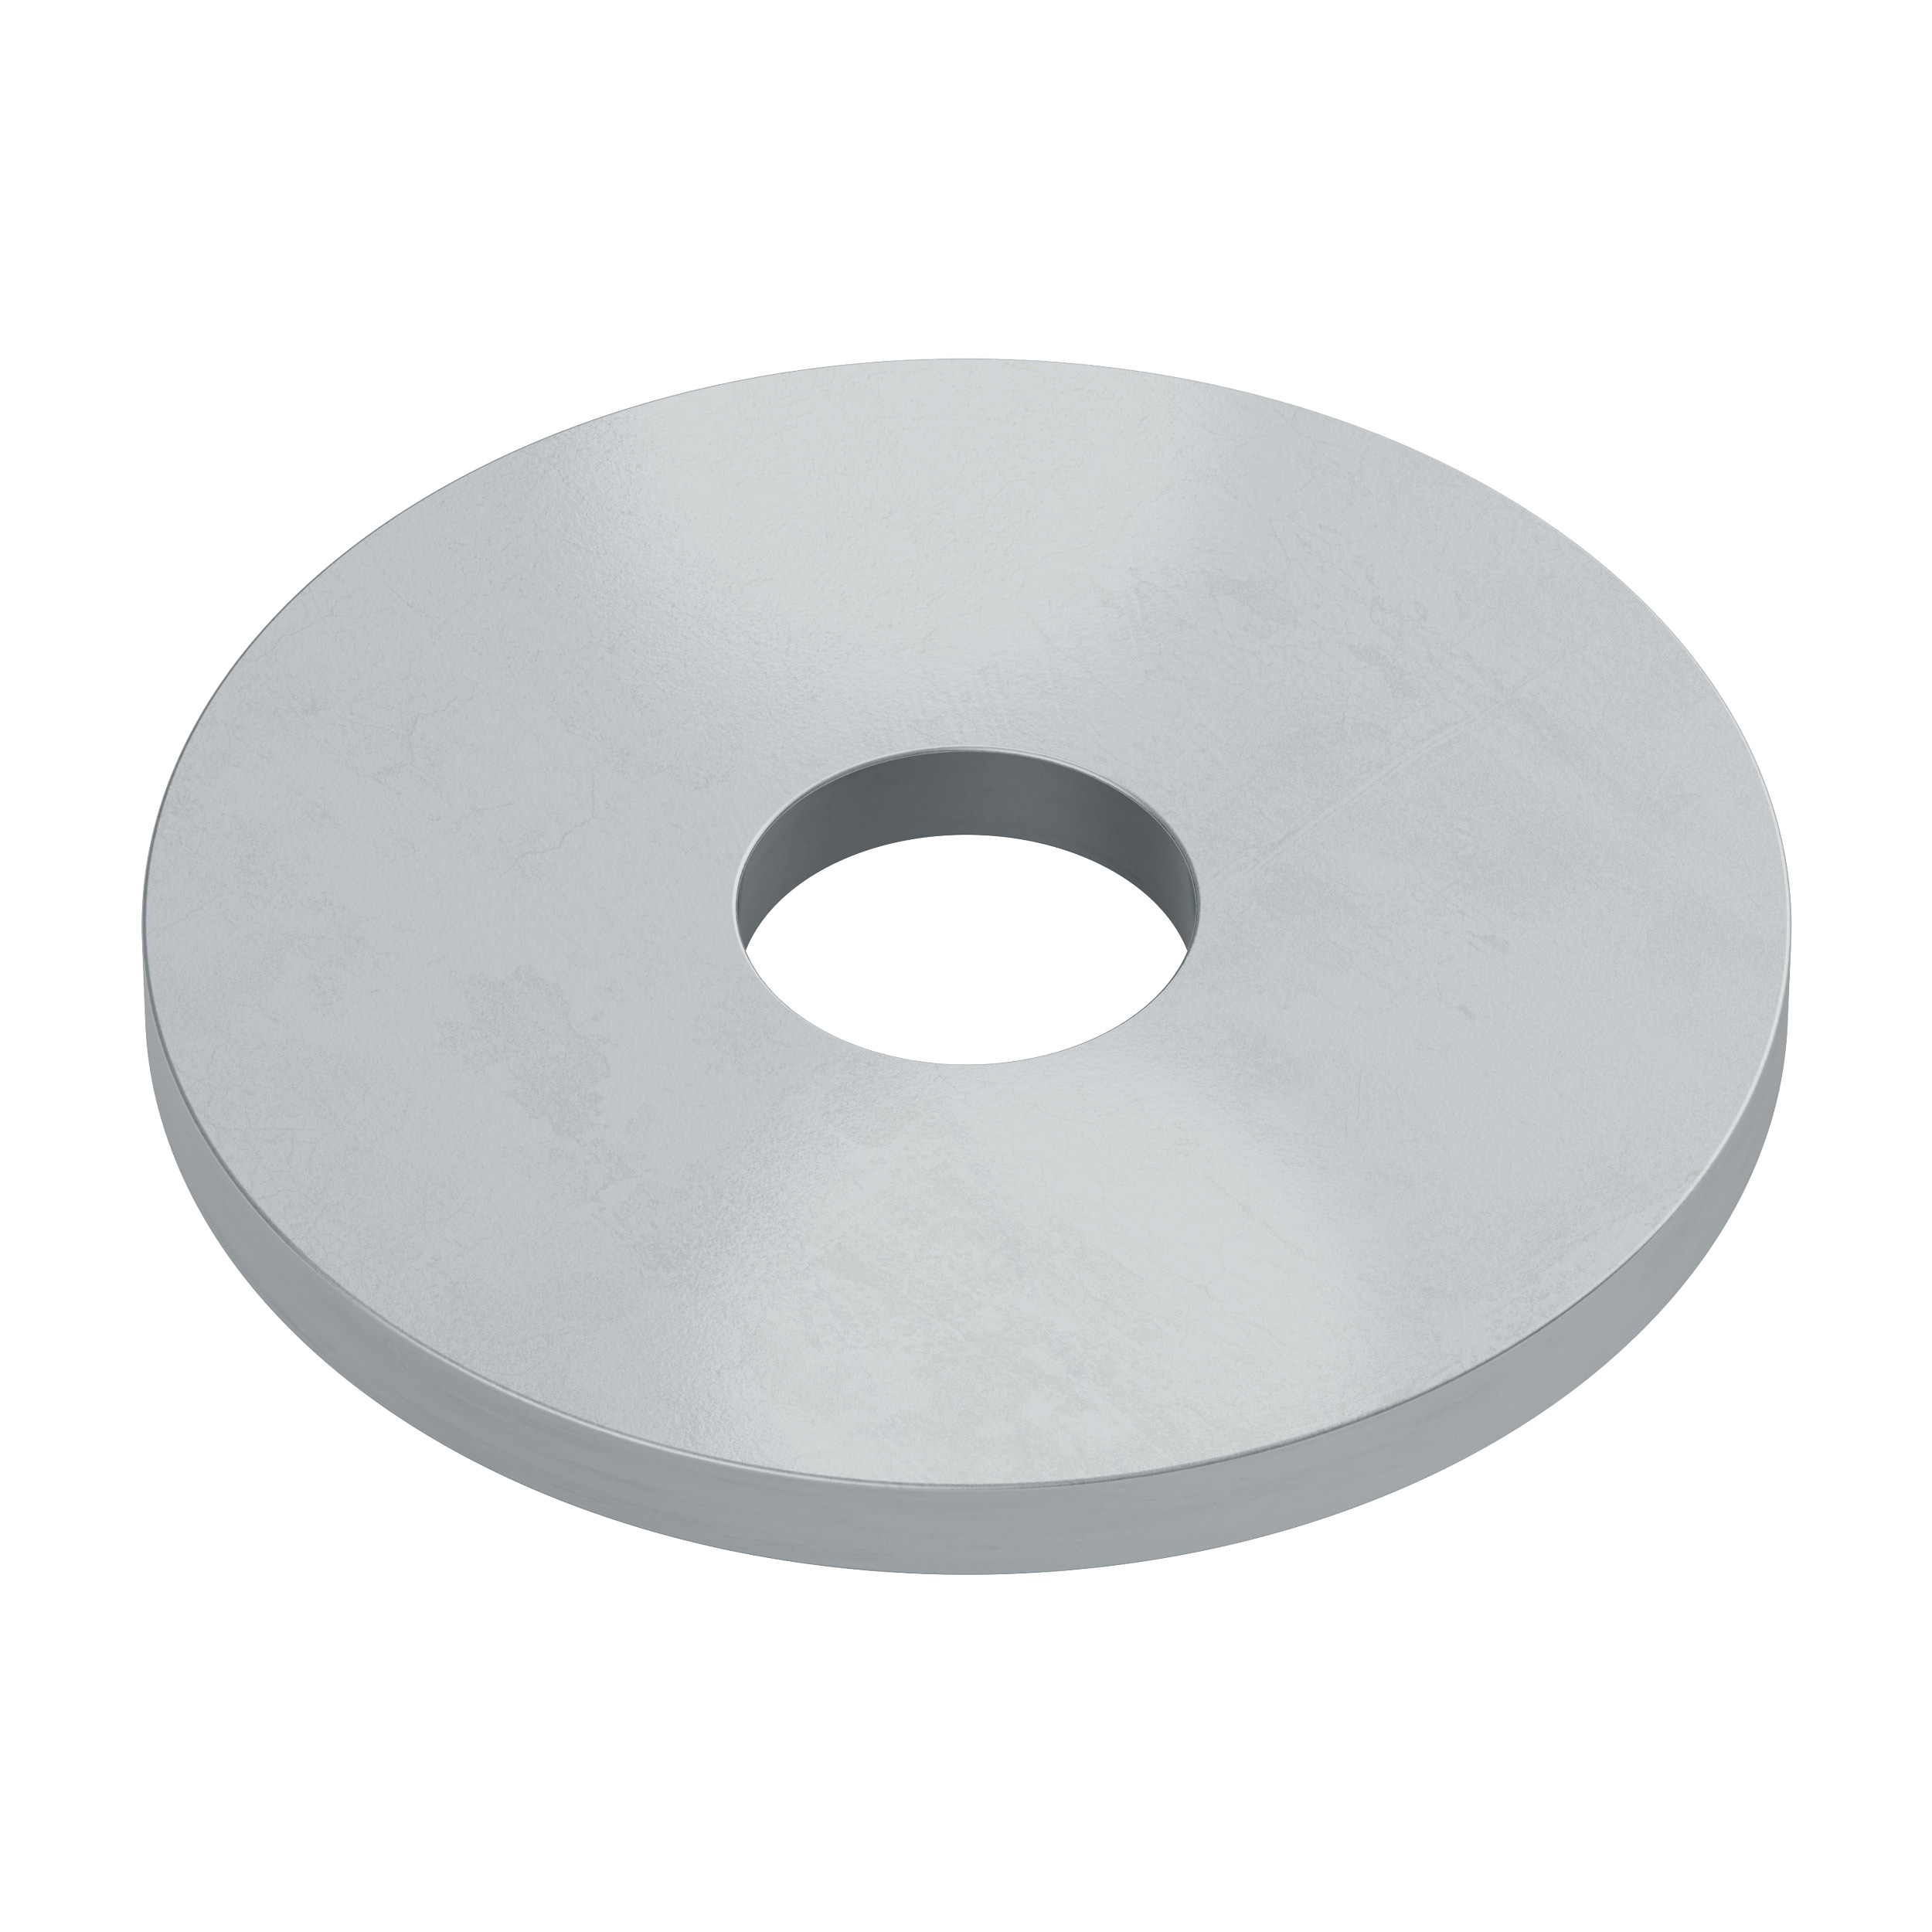 """#6 Zinc-Plated Oversized Washer (0.156"""" ID x 0.562"""" OD) - 6 Pack"""